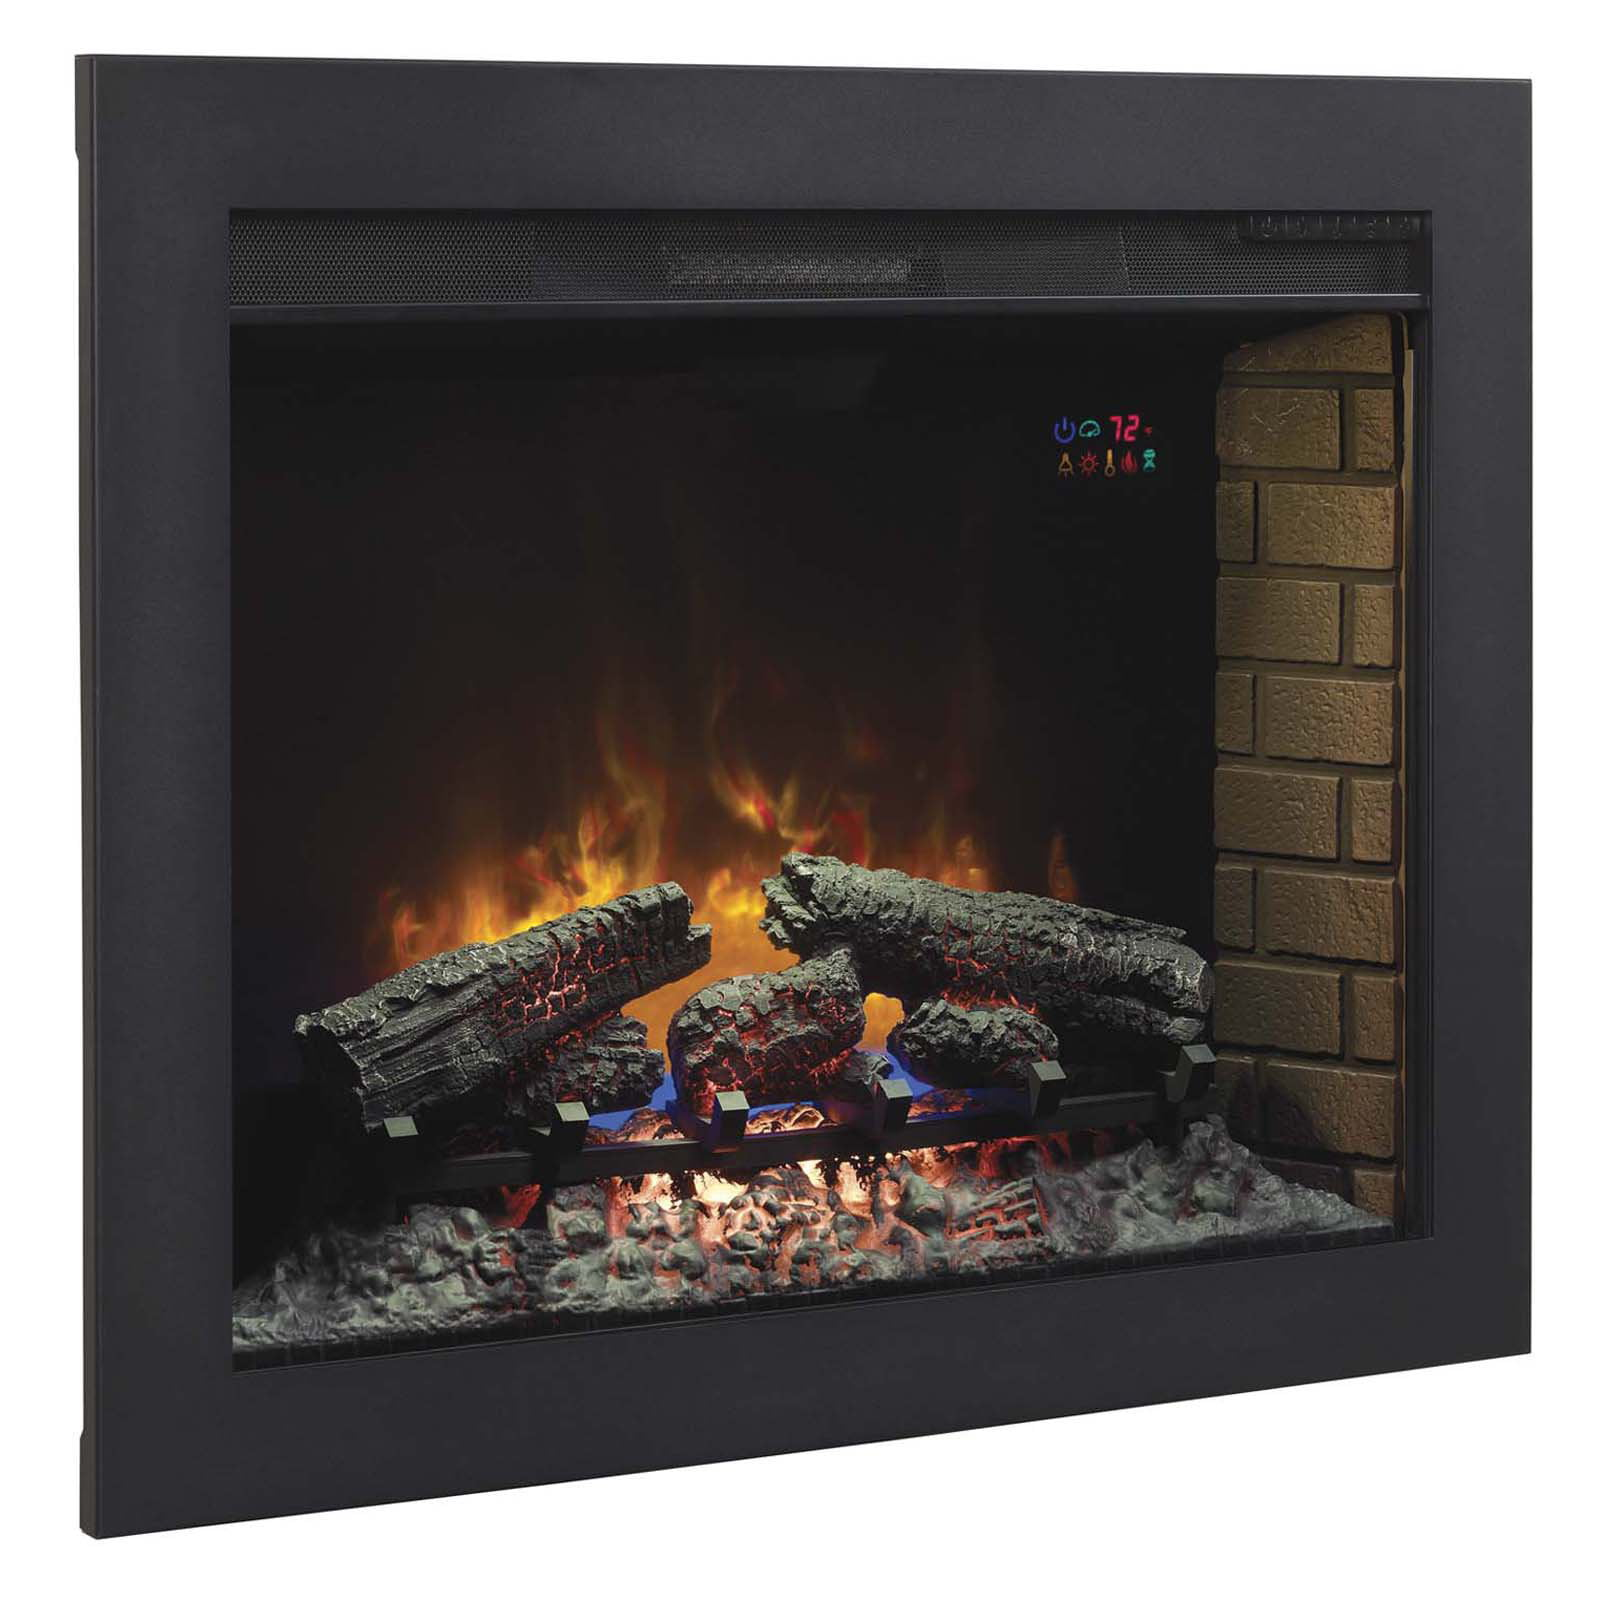 "*DNP*33"" Flush-Mount Trim Kit for use with In-Wall Electric Fireplace Insert by Twin-Star International"